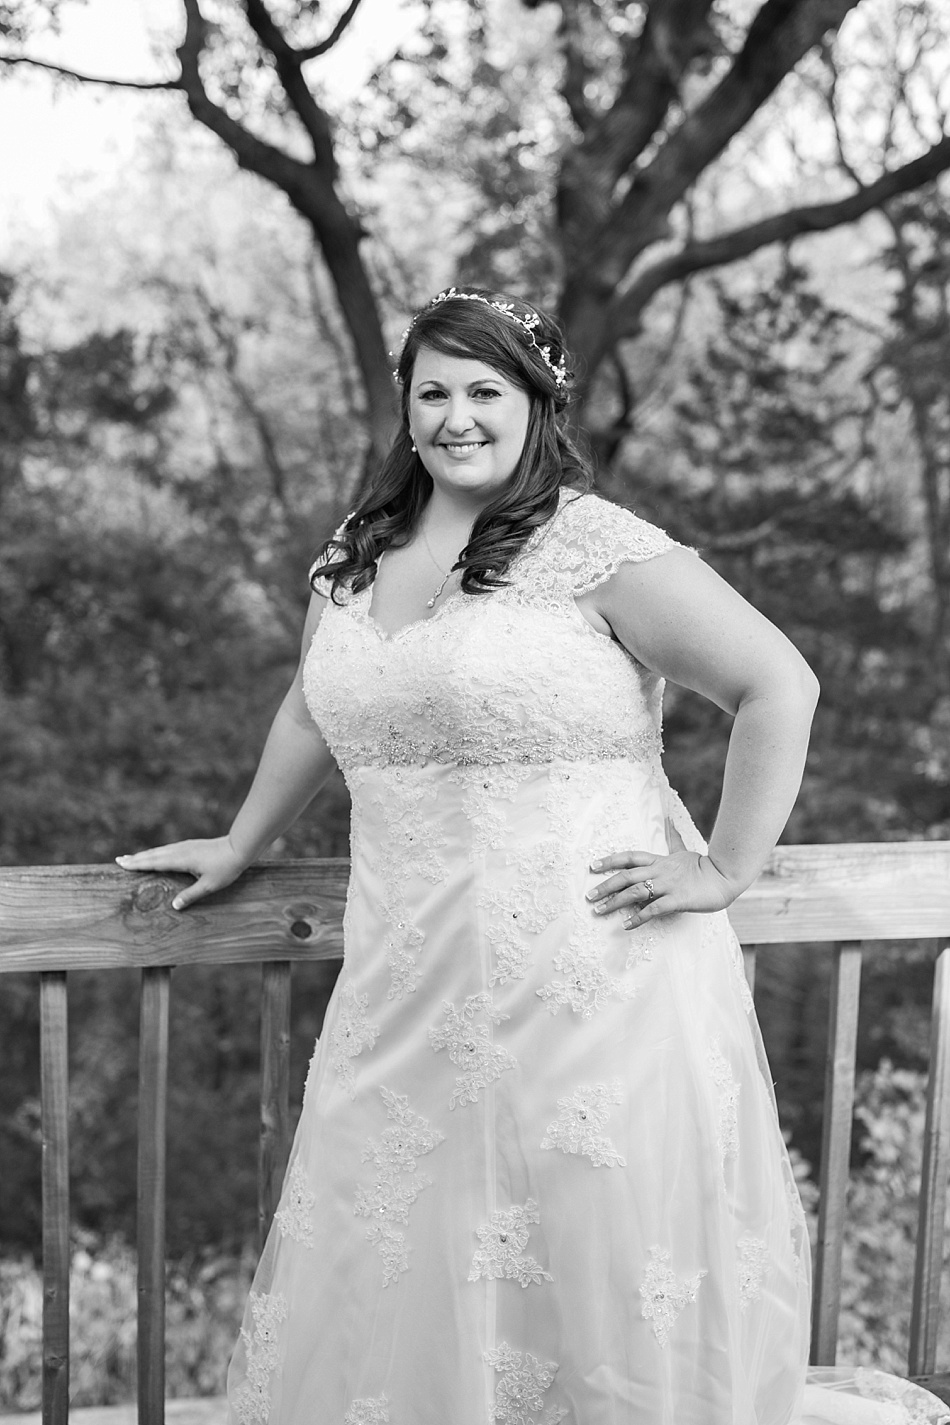 Bride at Gunsmoke Lodge in Brained, NE